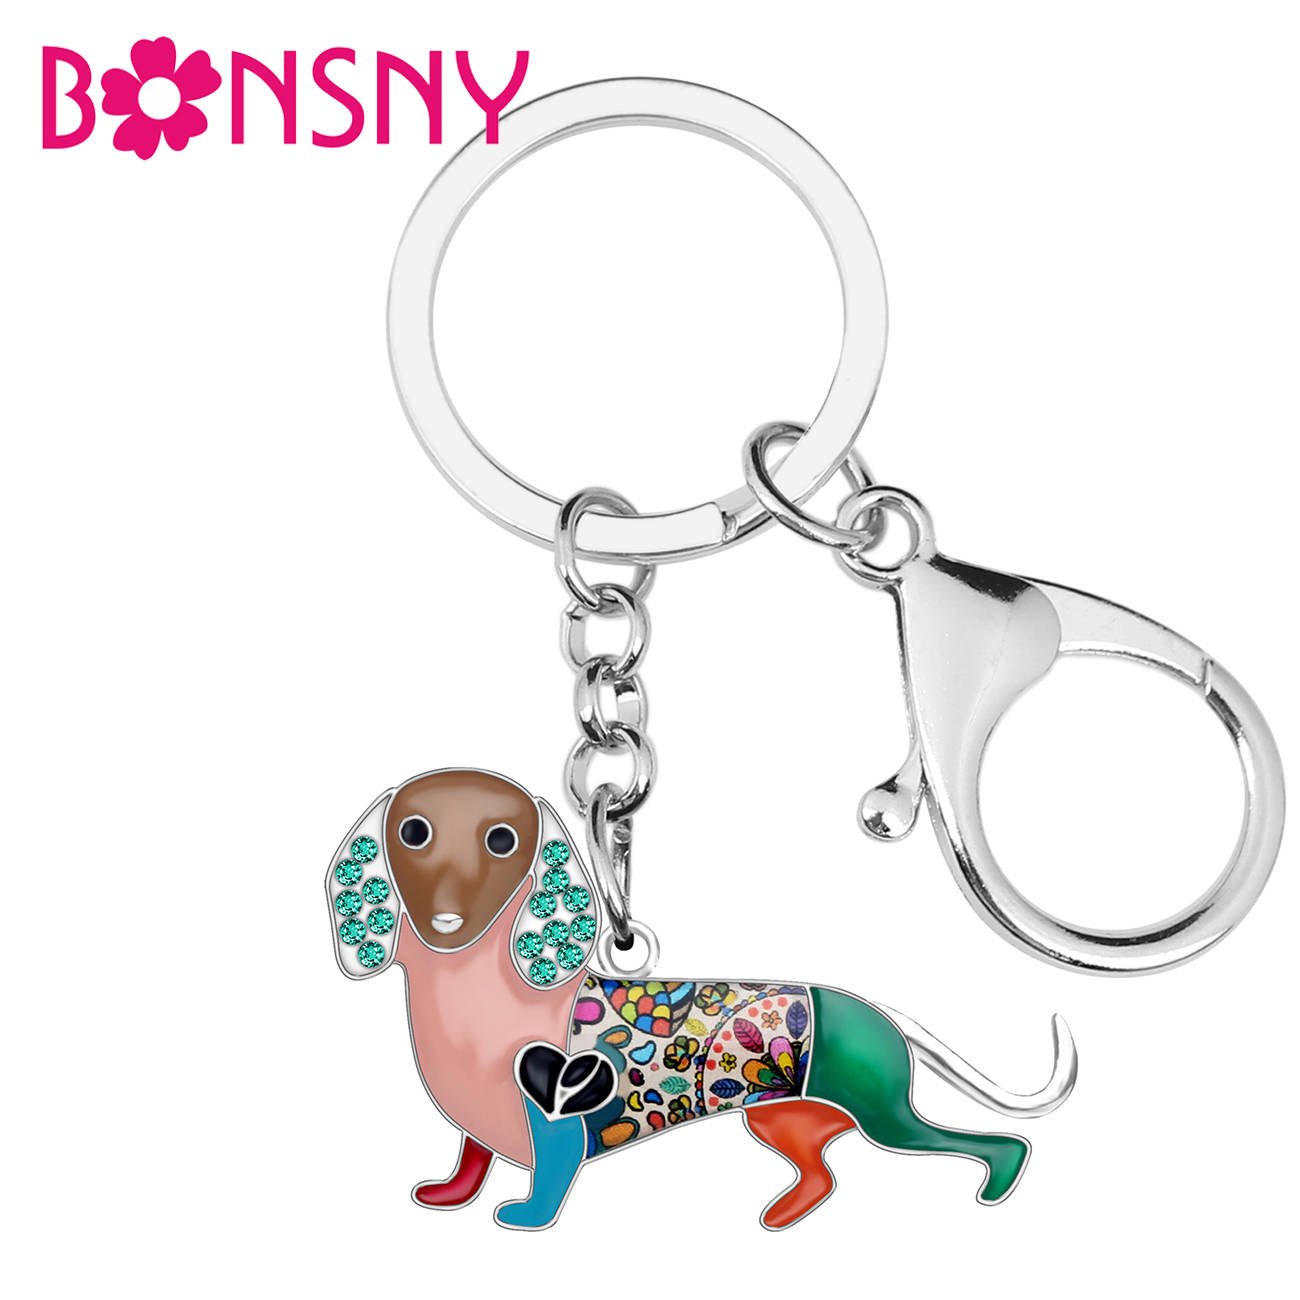 Bonsny Enamel Alloy Rhinestone Dachshund Dog Key Chains Keychains Holder Fashion Animal Jewelry Gift For Women Girls Bag Charms